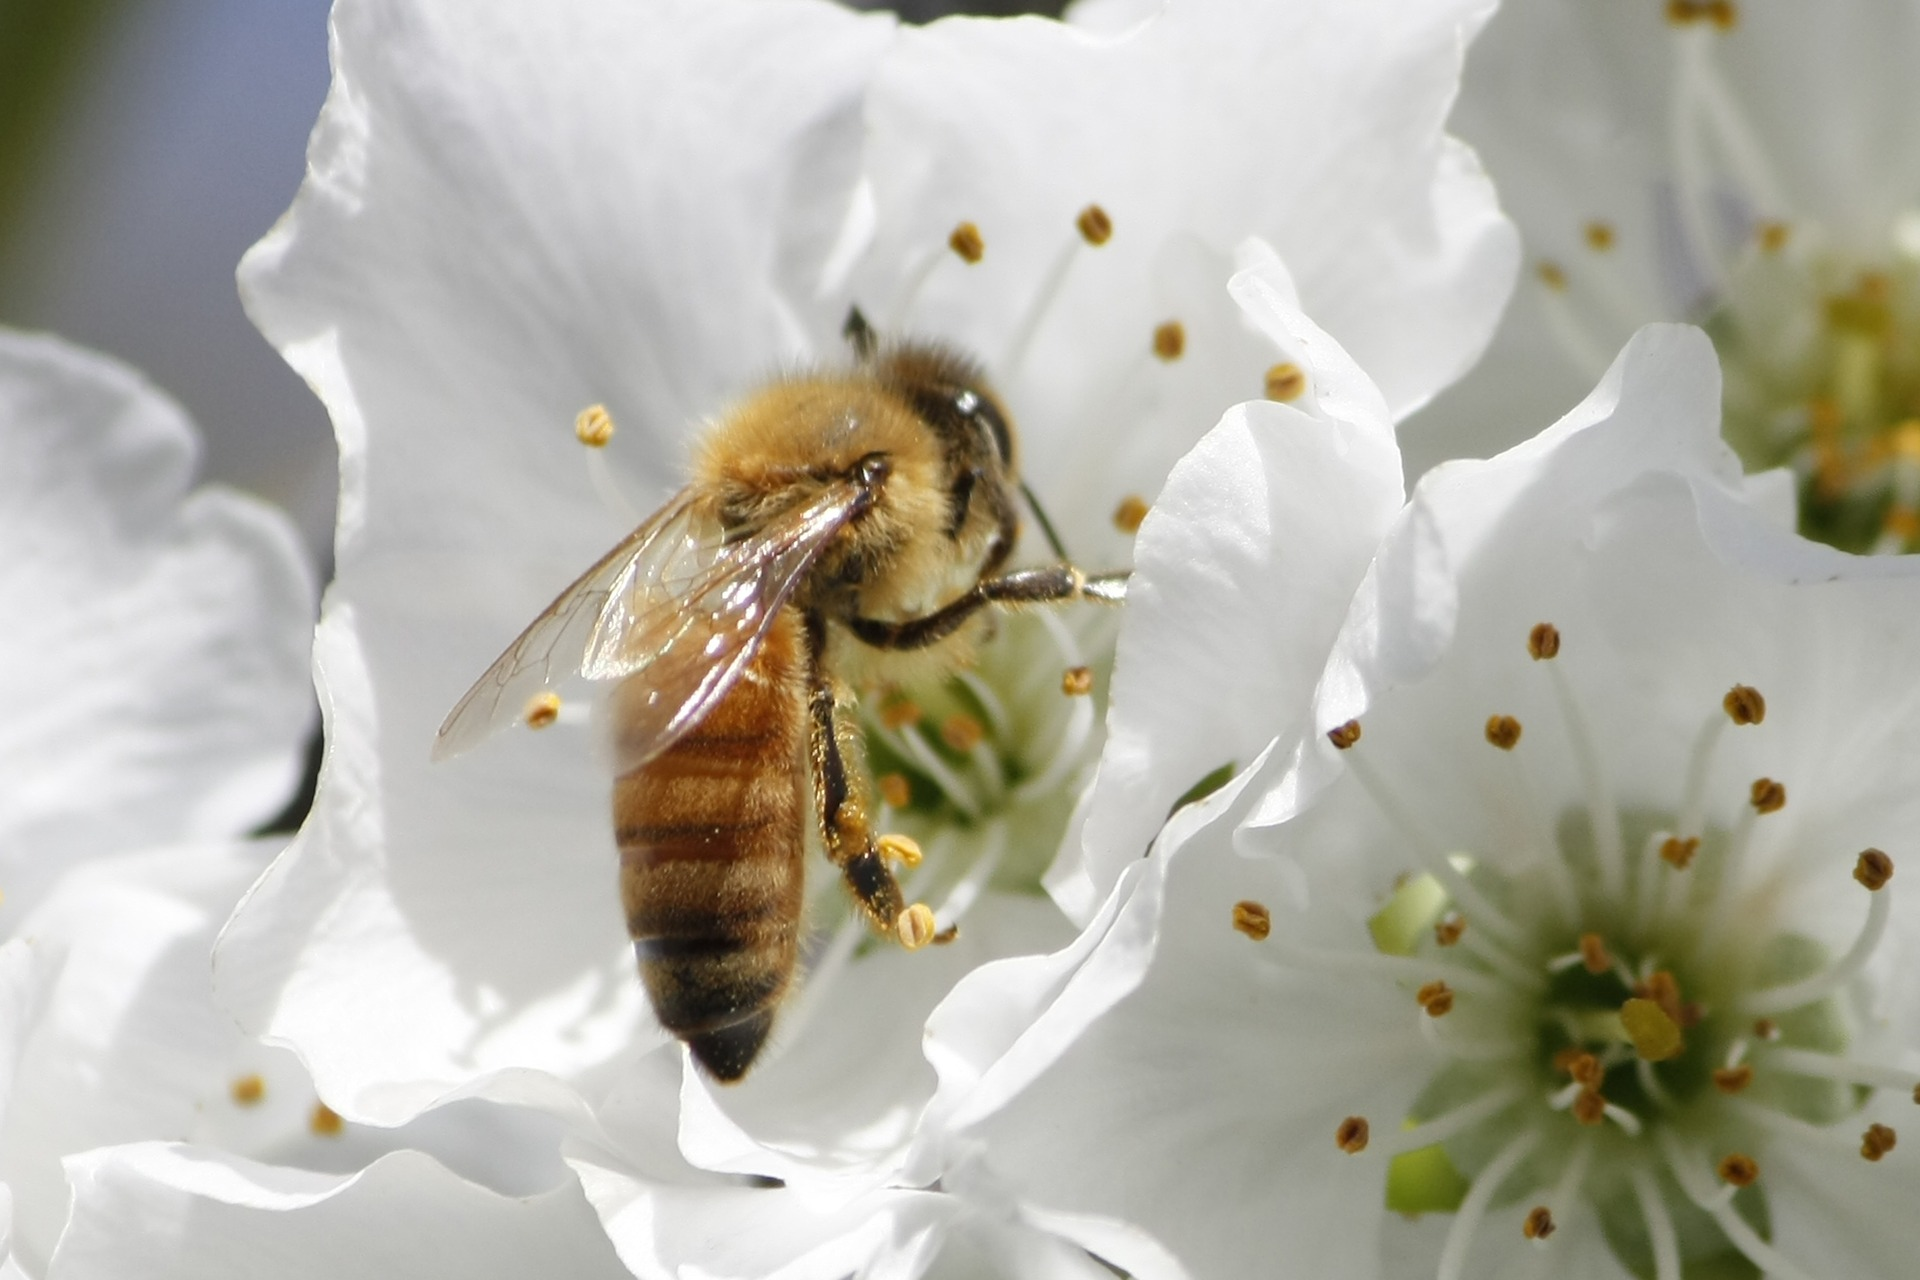 Image shows a honey bee perching on a white flower.